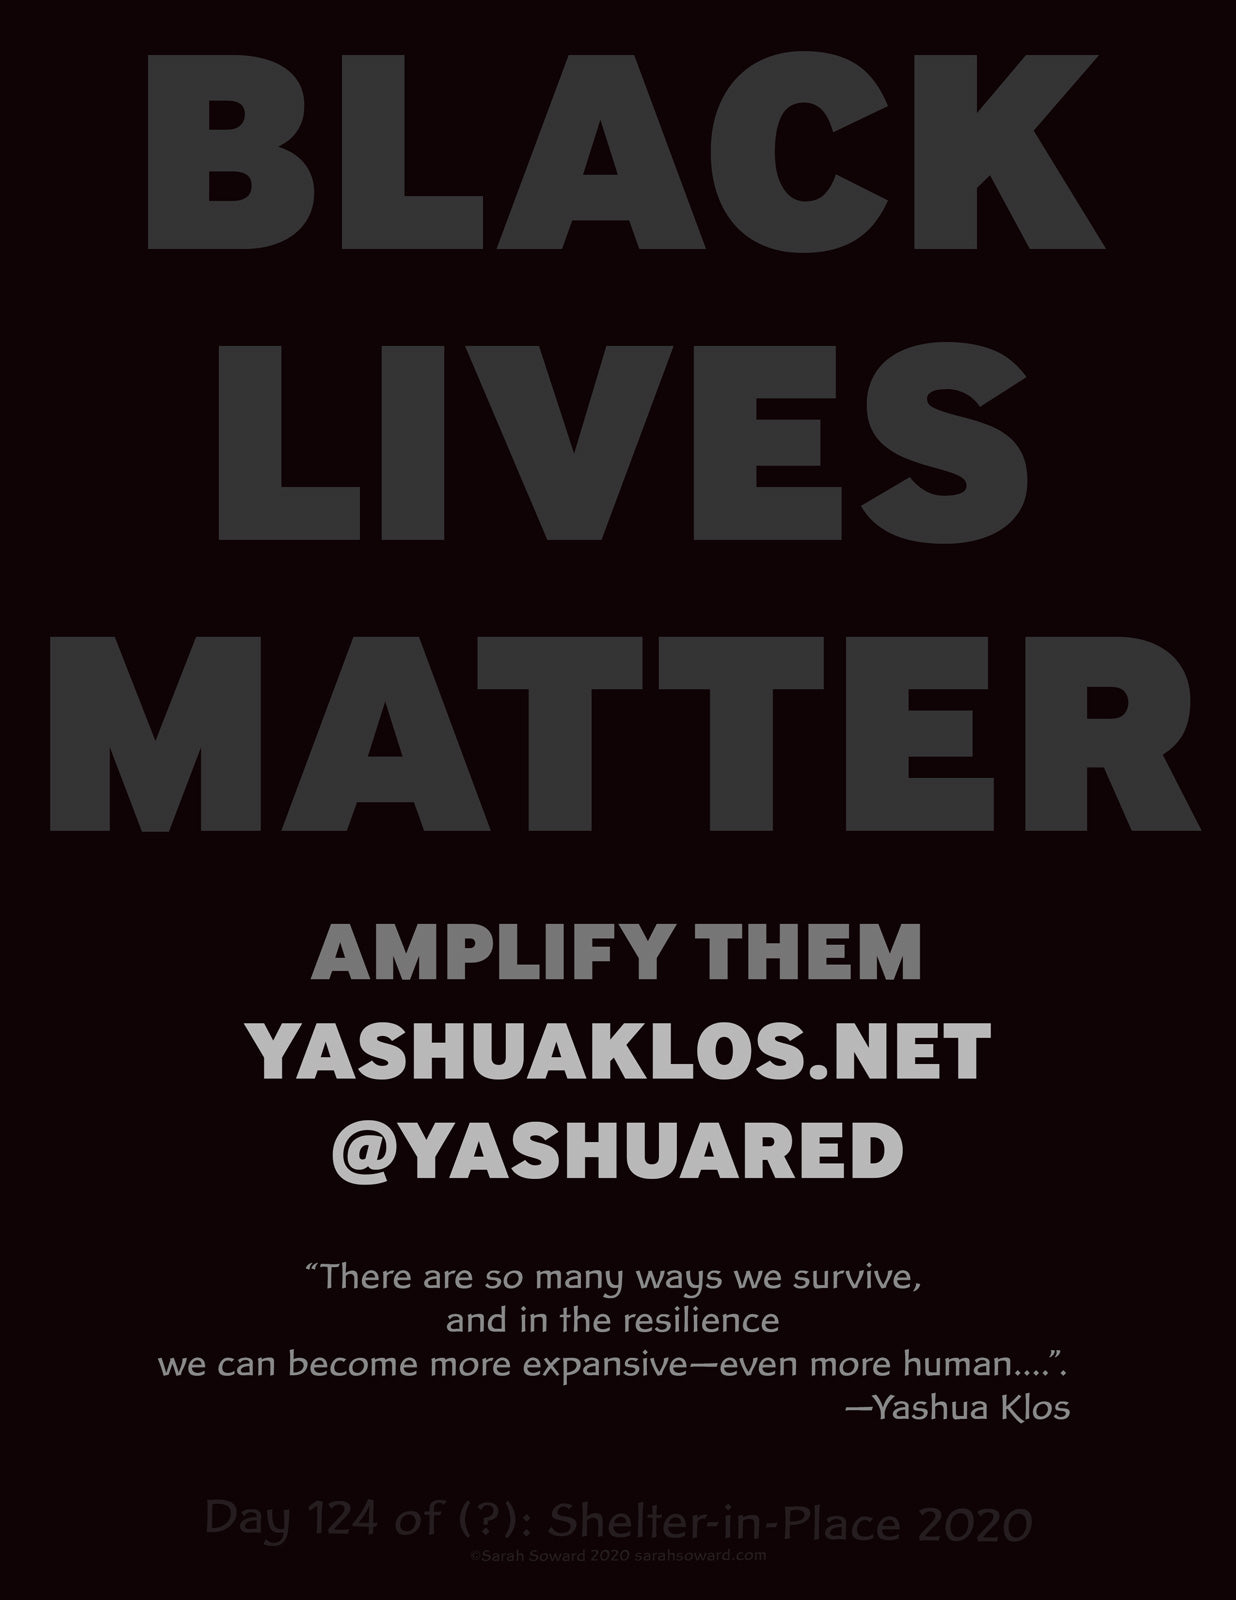 "The text on the image reads  Black Lives Matter Amplify Them yashuaklos.net  @yashuared  ""There are so many ways we survive, and in the resilience we can become more expansive—even more human...."". —Yashua Klos"